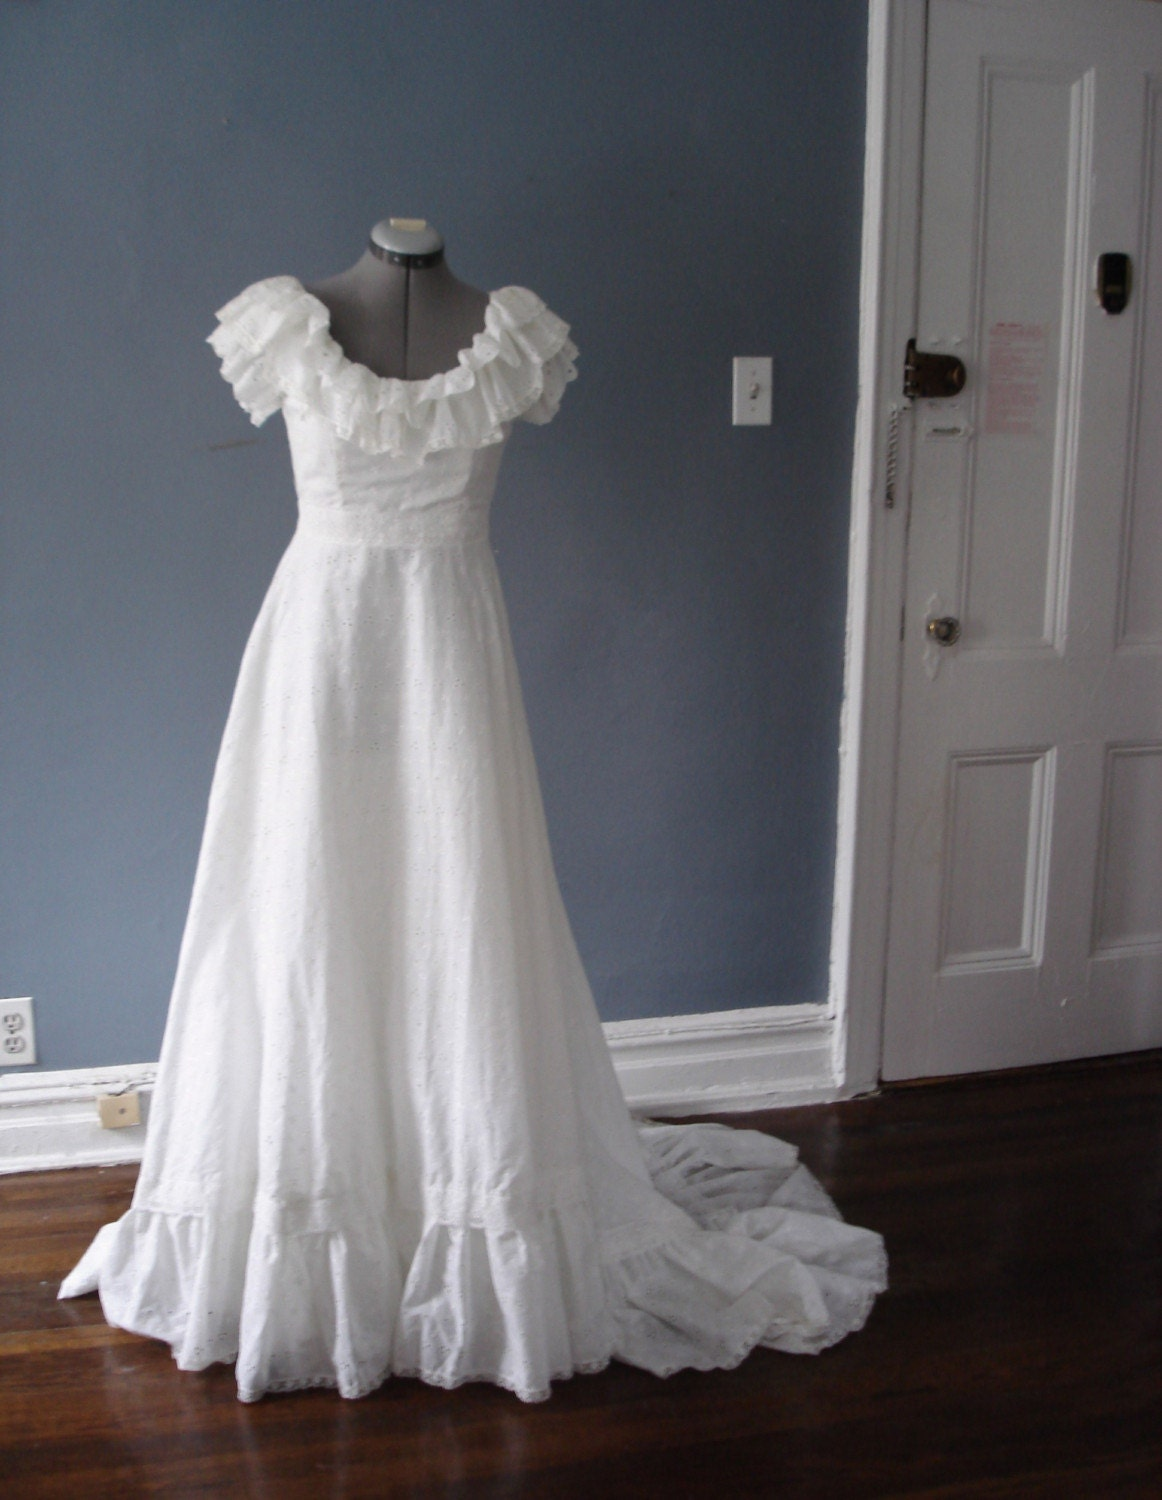 Stunning Vintage 1970s Eyelet Wedding Dress - S